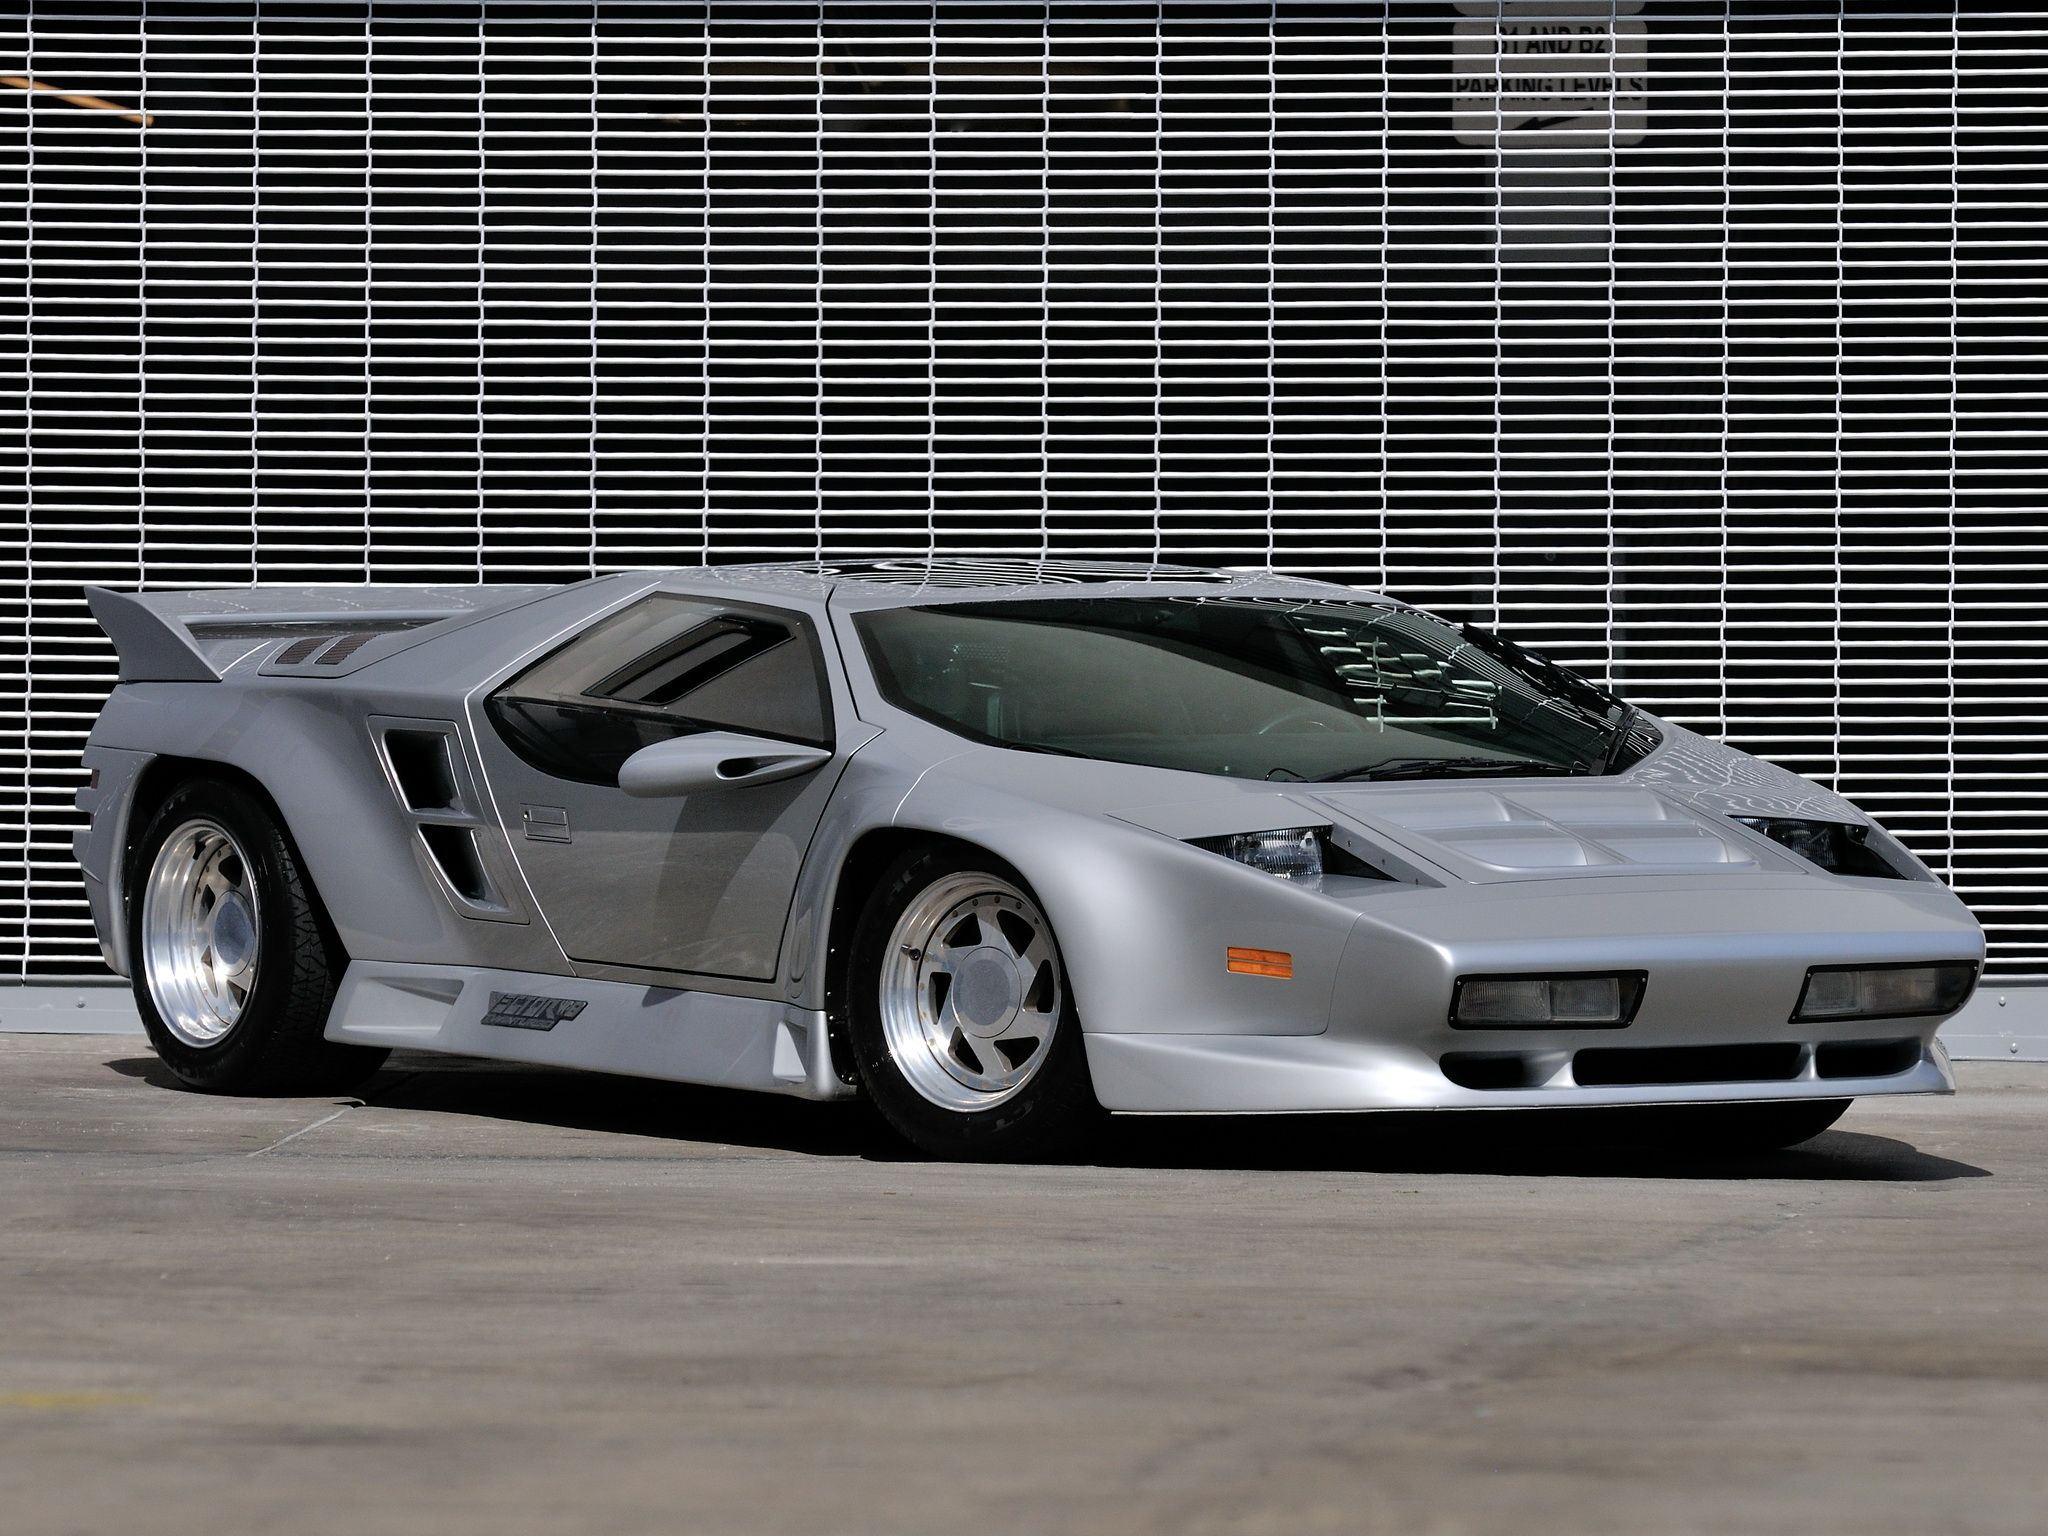 1990 93 Vector W8 Super Cars Classic Cars Muscle Classic Cars